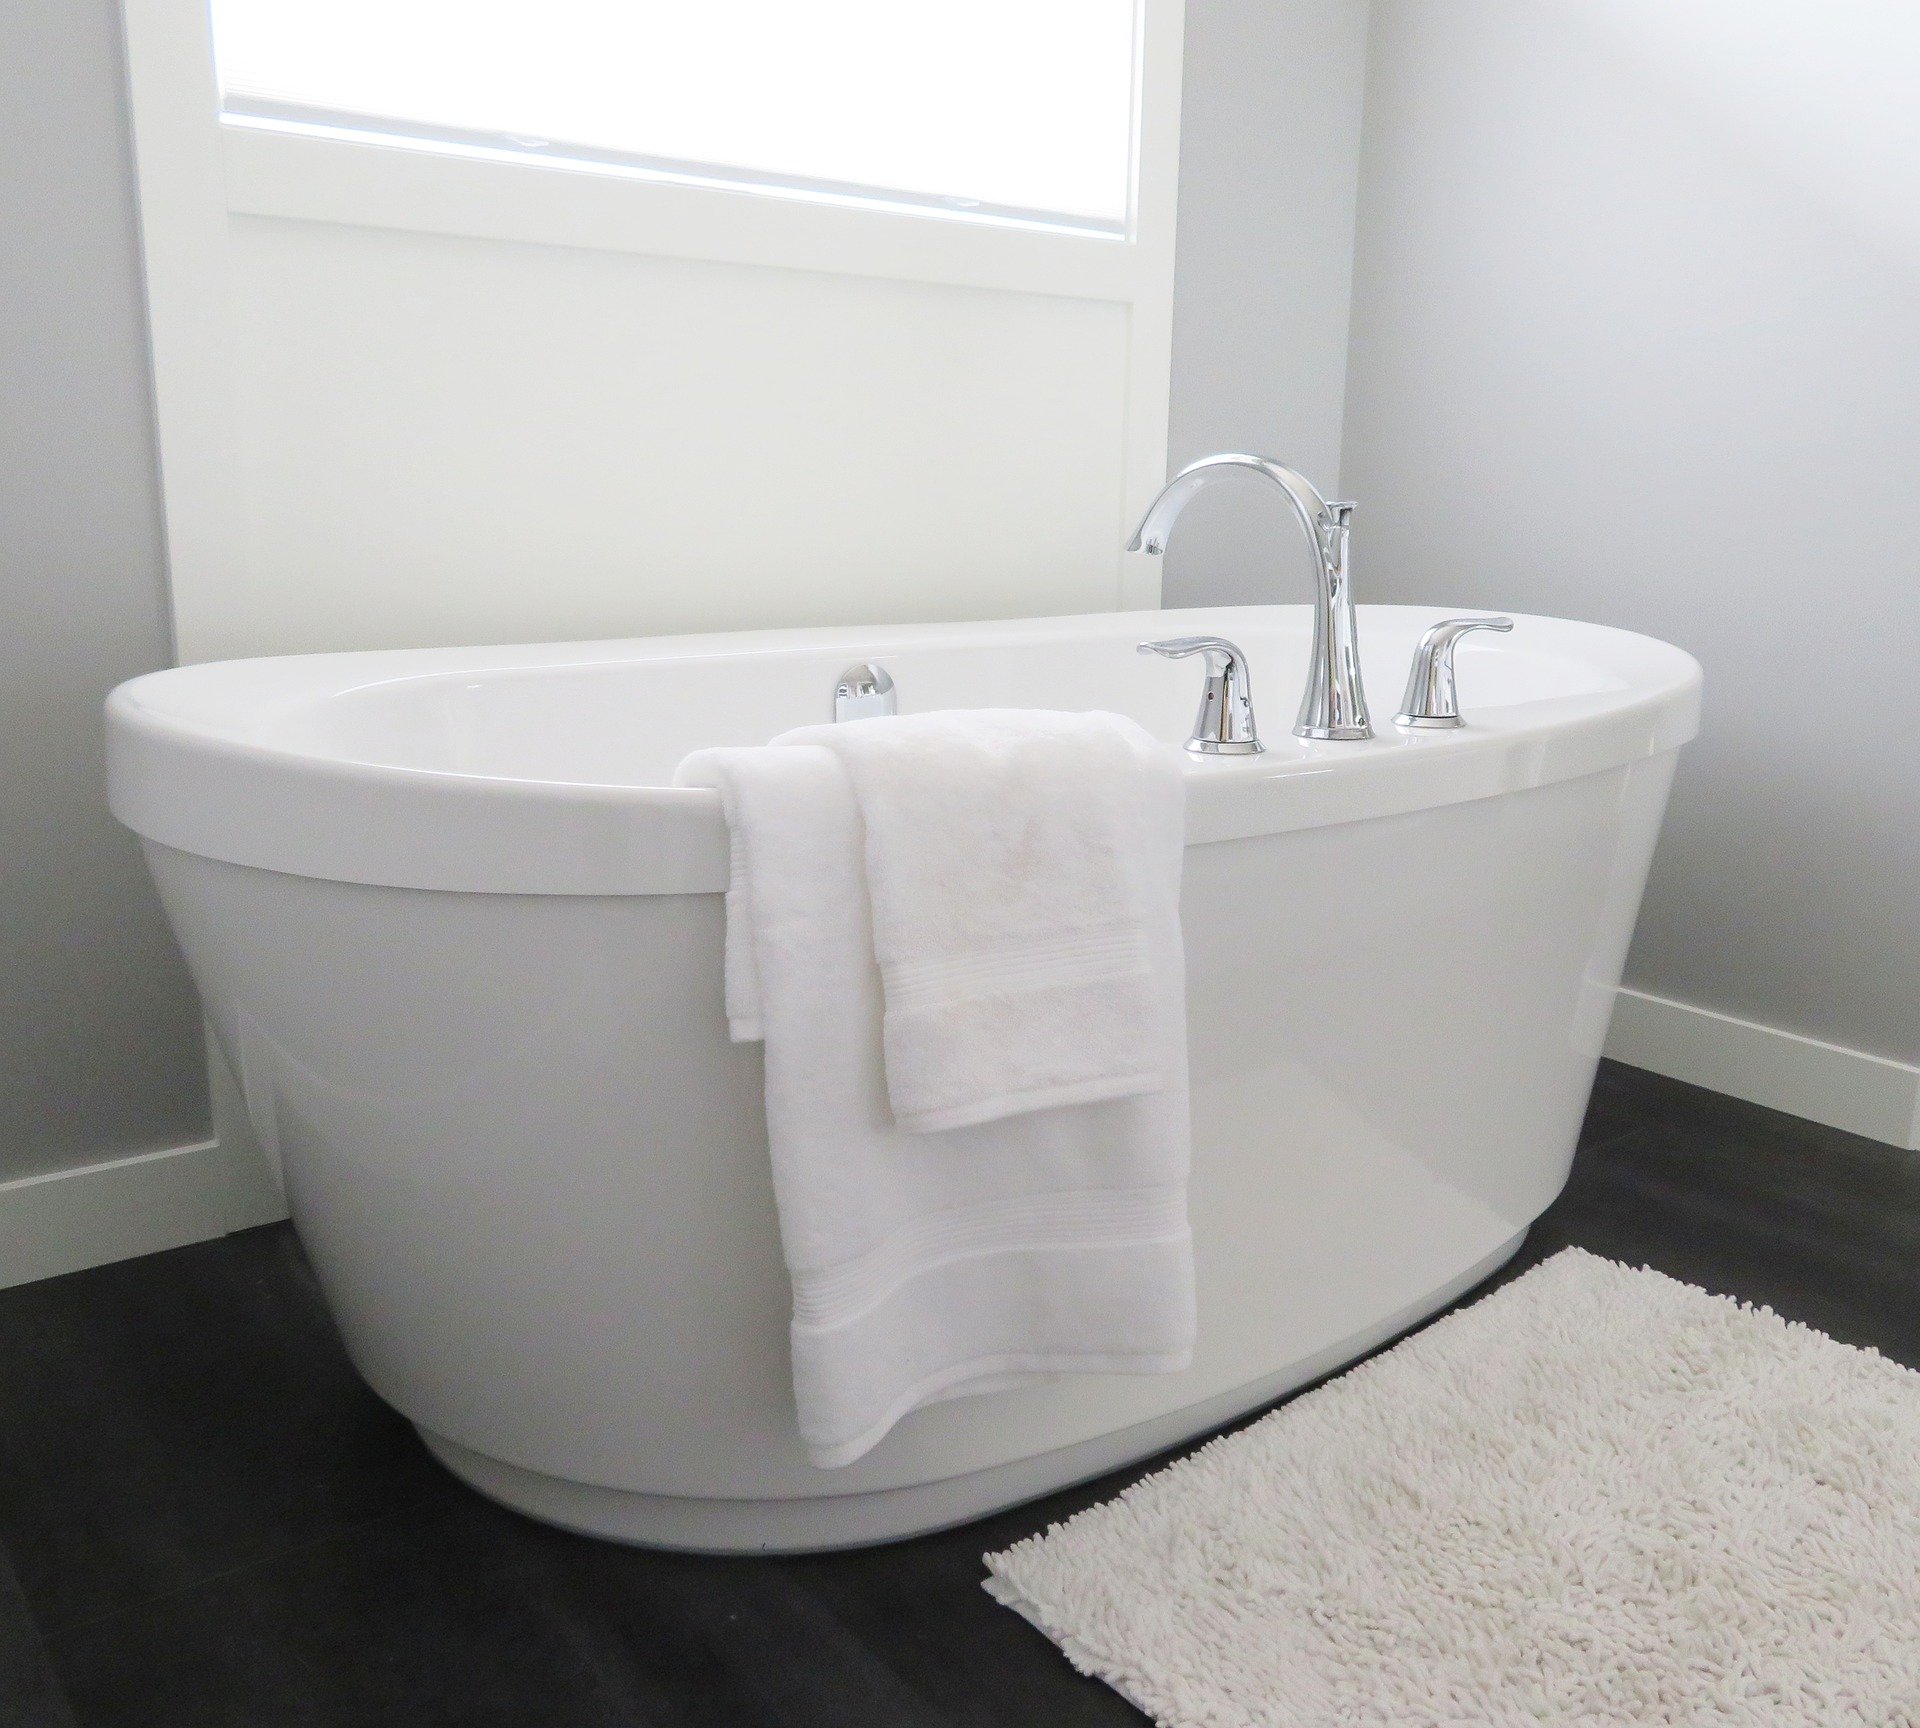 Reasons To Purchase Walk In Bathtubs For Elderly People Real Standards